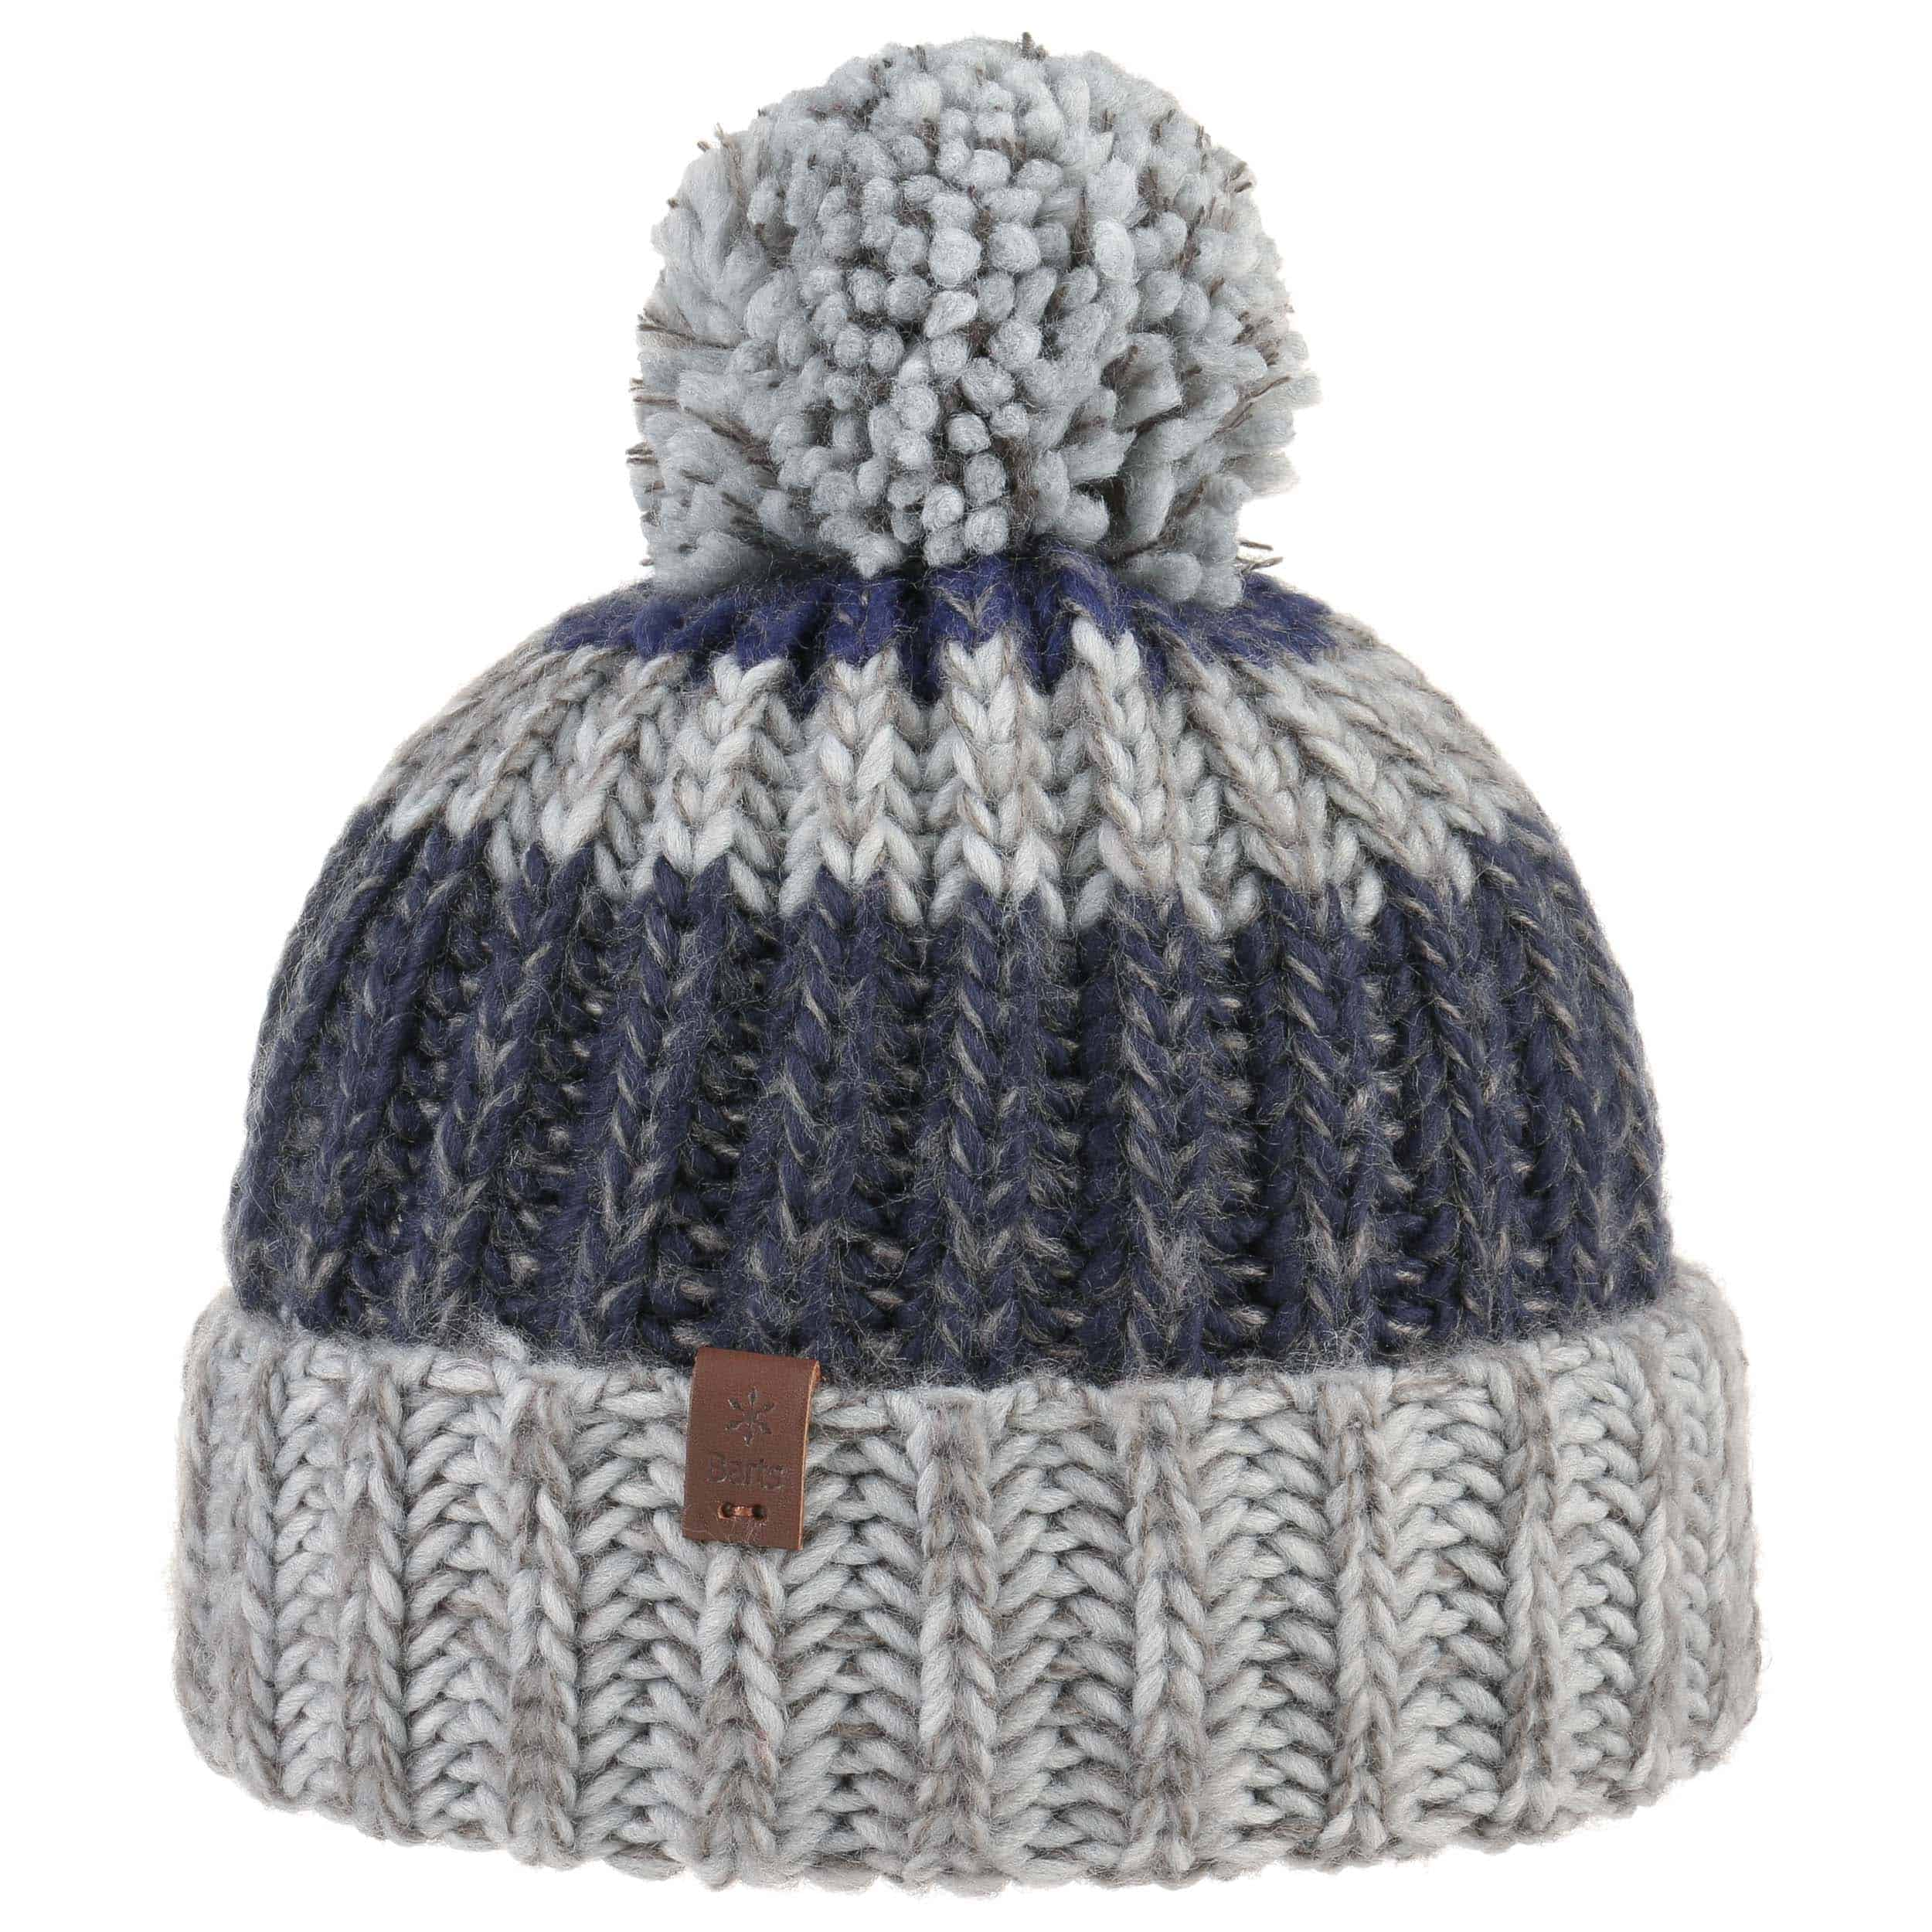 382d386c5b448 ... Cole Beanie Hat by Barts - light grey 3 ...